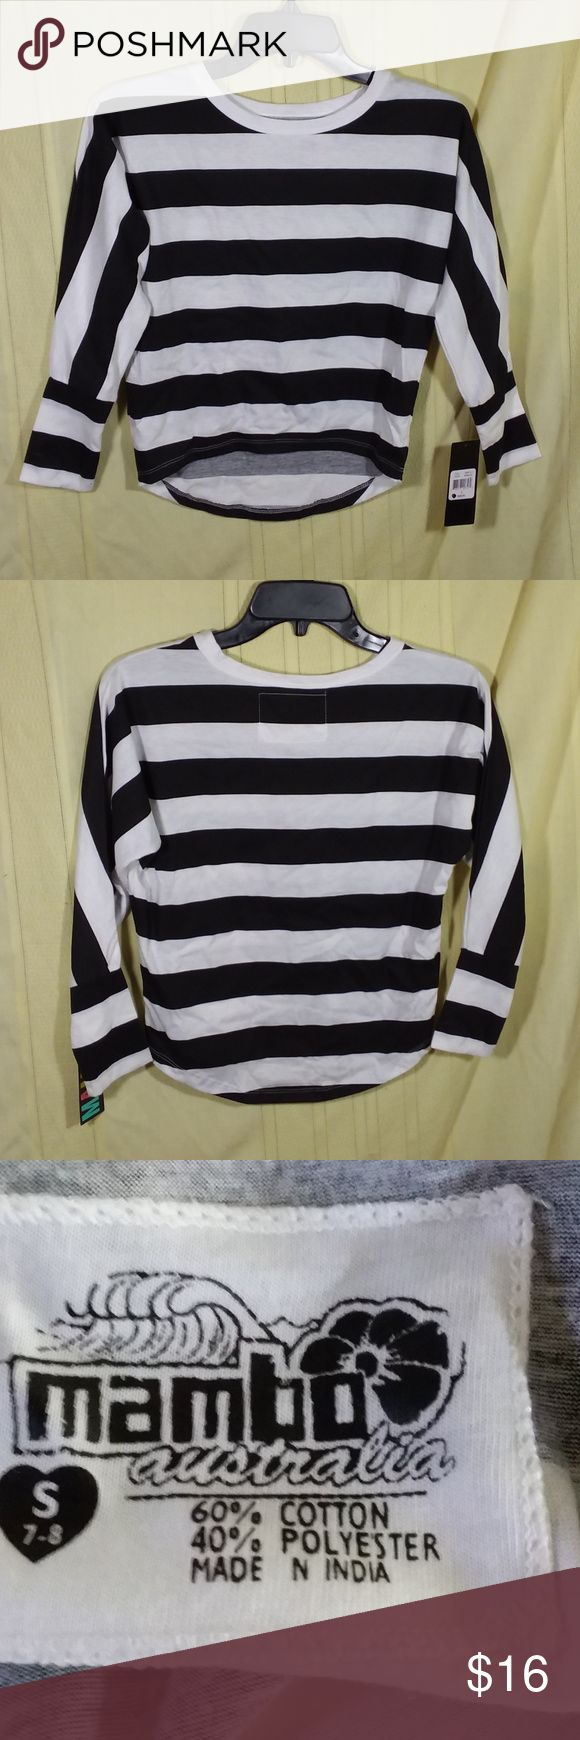 """Mambo Womens top Size S 7/8 black white stripe Brand:  Mambo Australian top, black and white striped, 3/4 sleeve length, hi-lo, batwing  Womens size S 7/8  Measurements were taken with garment laying flat, with chest measurements doubled, and are approximate:         Length:  Front:  18"""" Back:  20 1/2"""" Chest:  36""""  Material:  60% Cotton, 40% Polyester Mambo Tops Blouses"""